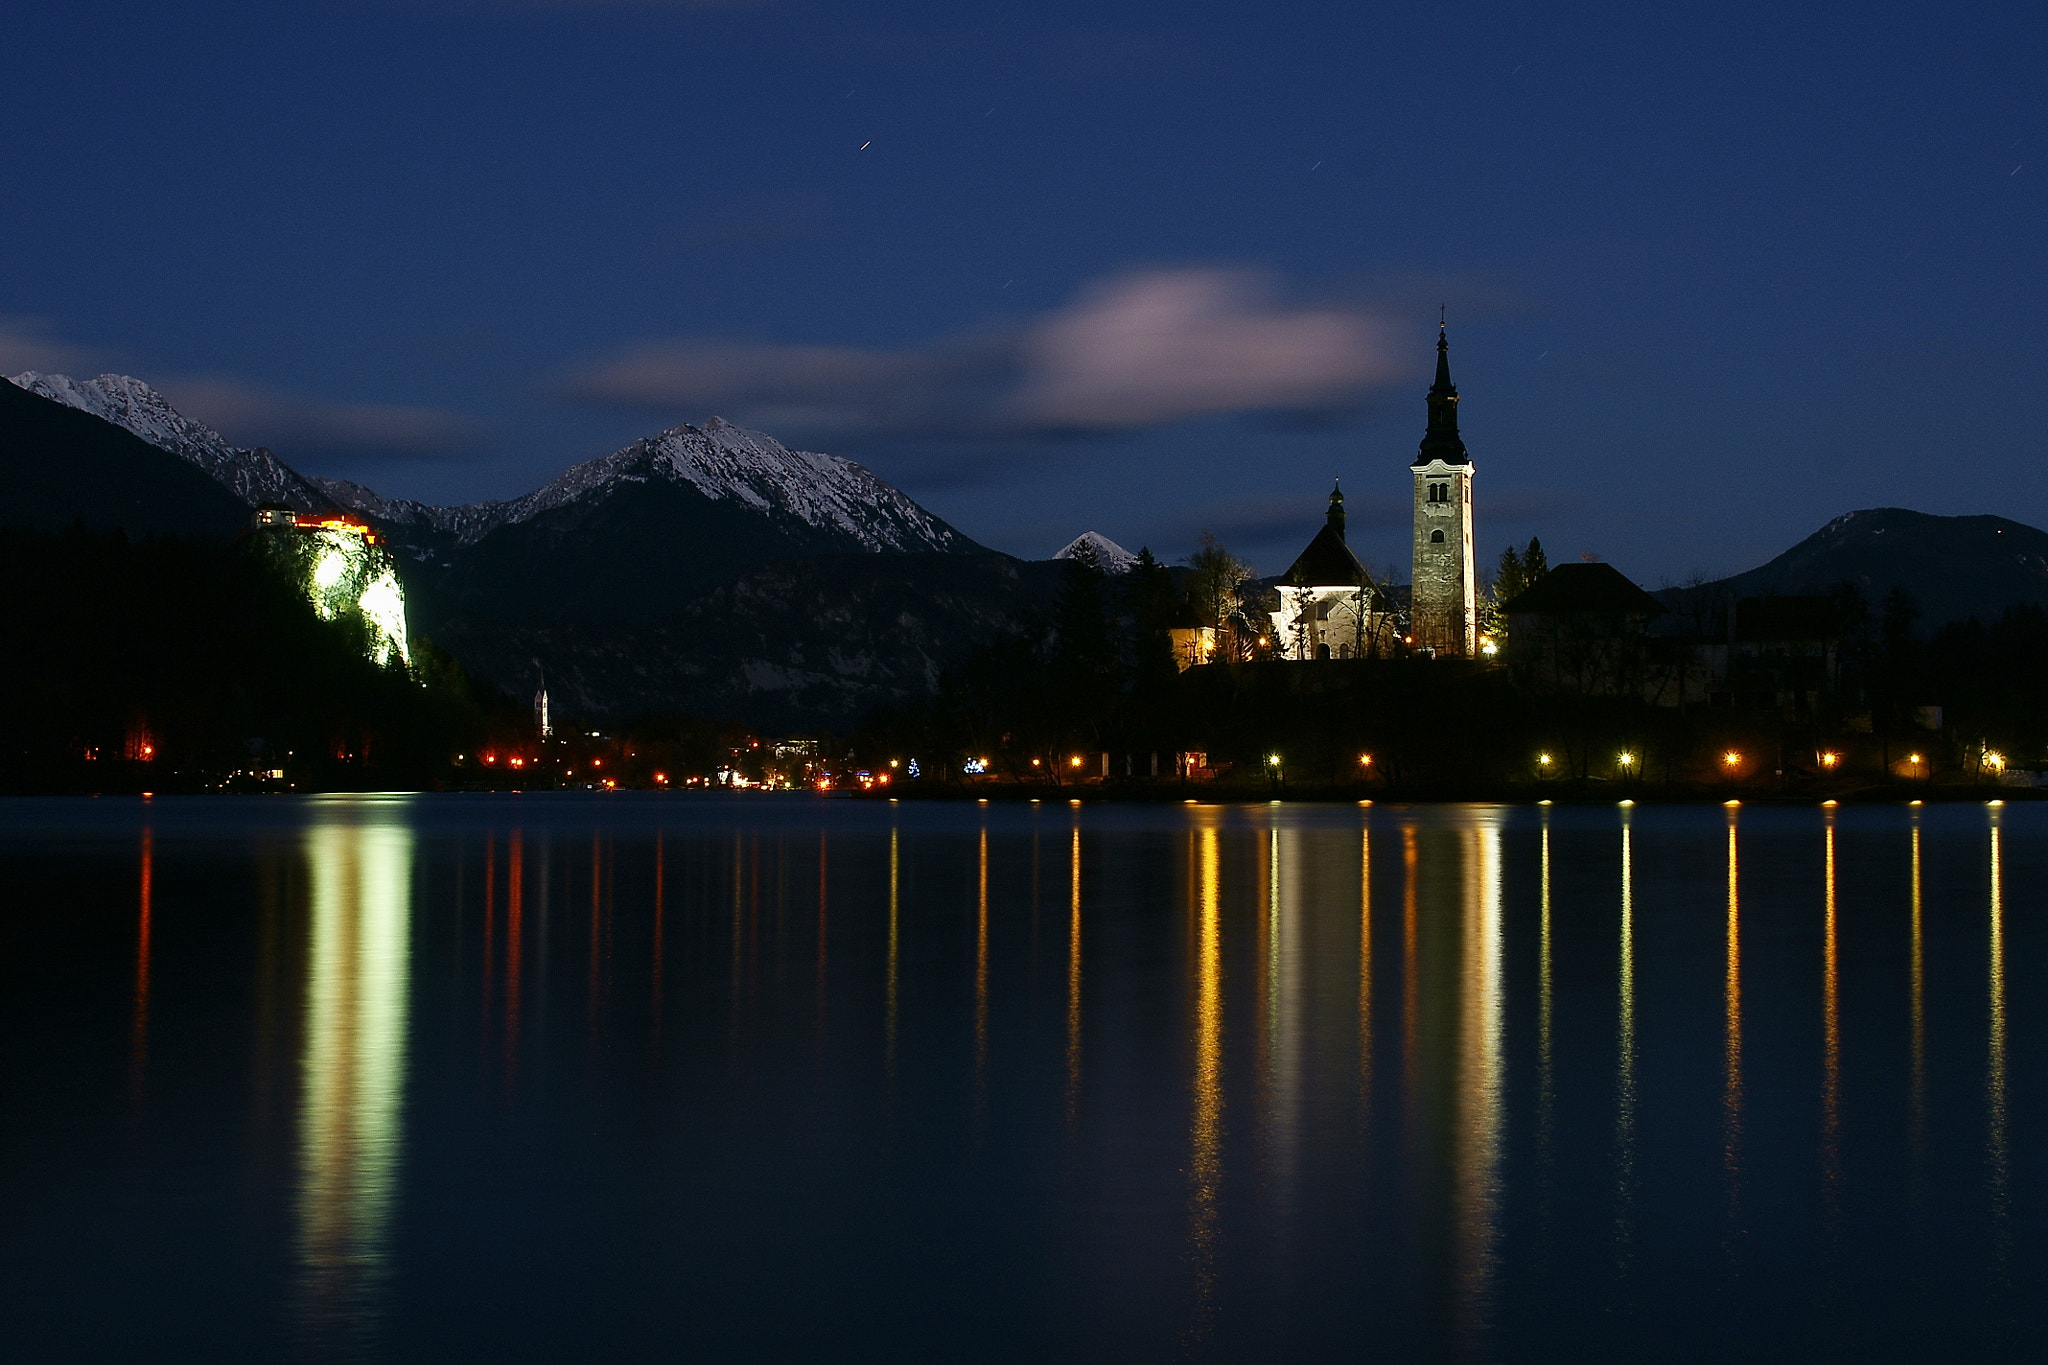 Photograph Bled by Branko Frelih on 500px